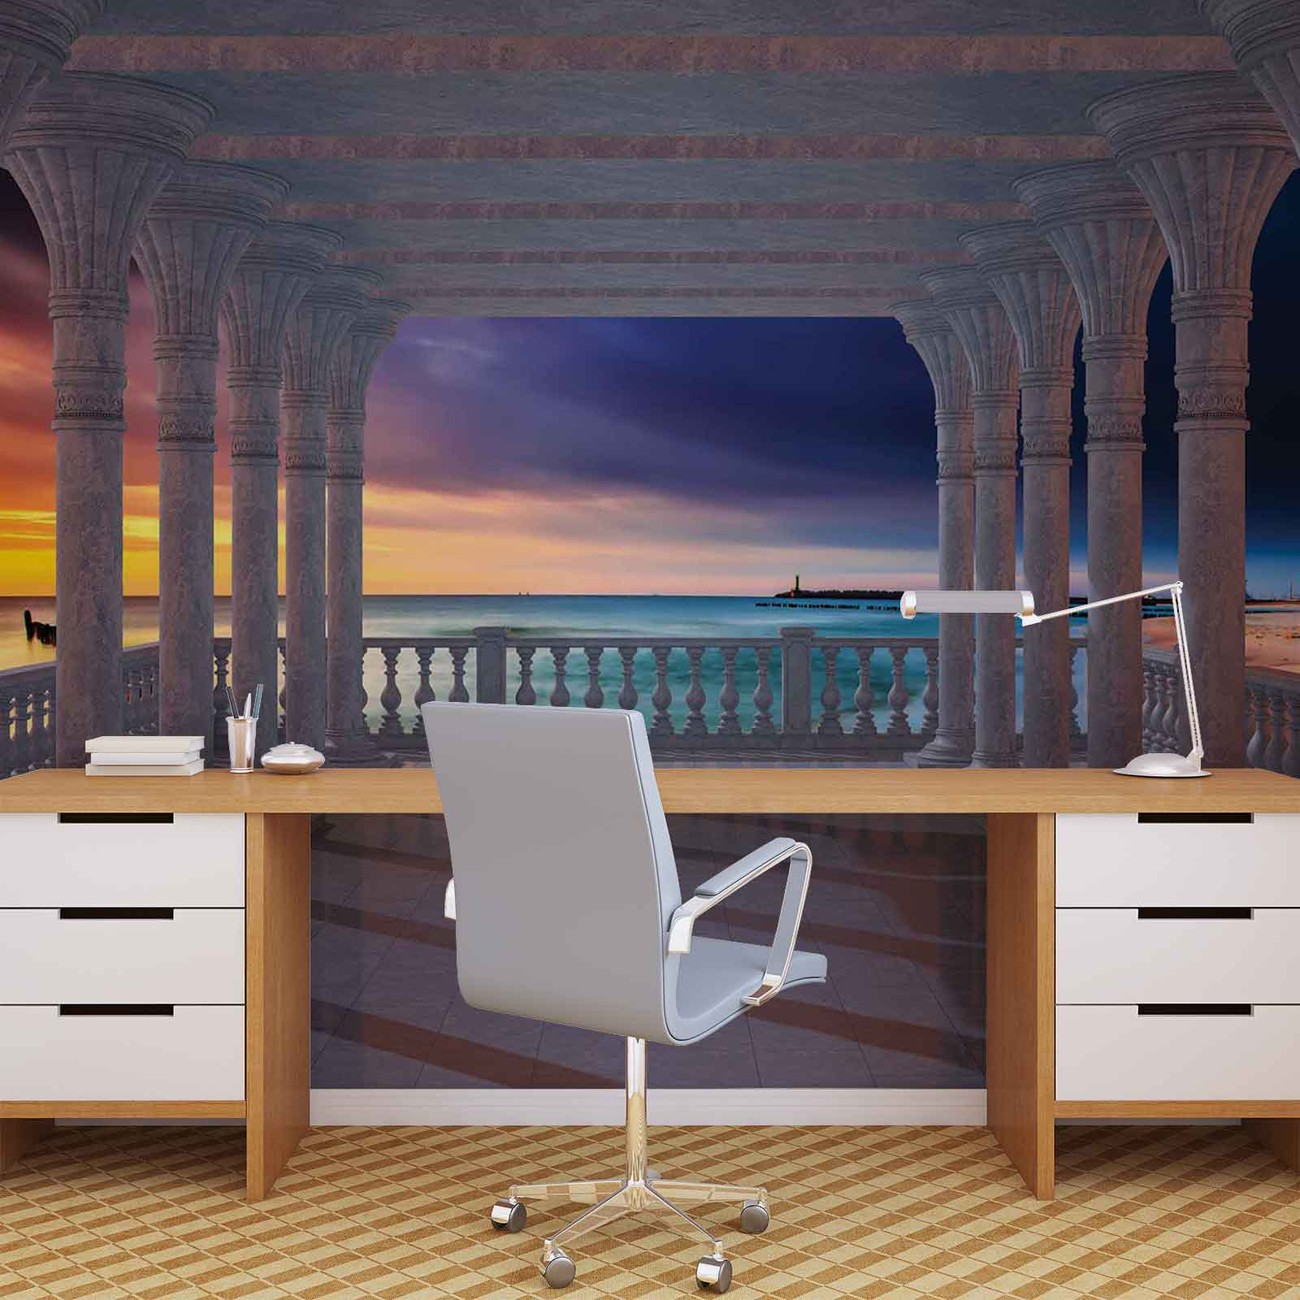 vue sur la mer travers les arches poster mural papier peint acheter le sur. Black Bedroom Furniture Sets. Home Design Ideas